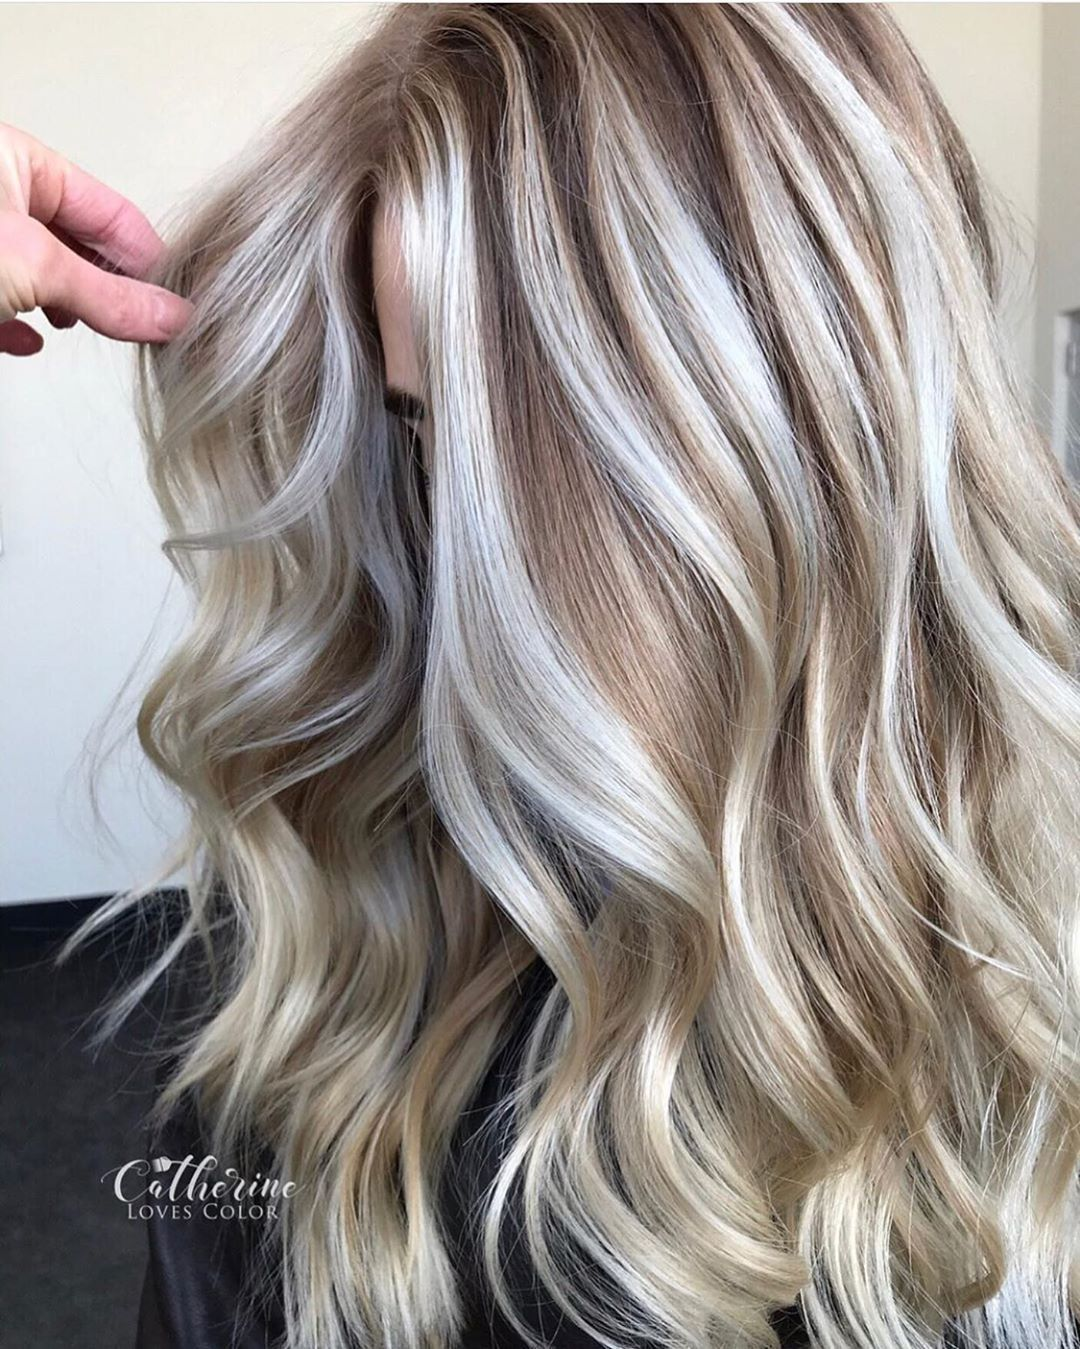 Best Of Balayage Hair On Instagram Monday Motivation Painted And Lowlighted To Perfection By Catherinelovescolor Hair Styles Balayage Hair Low Lights Hair